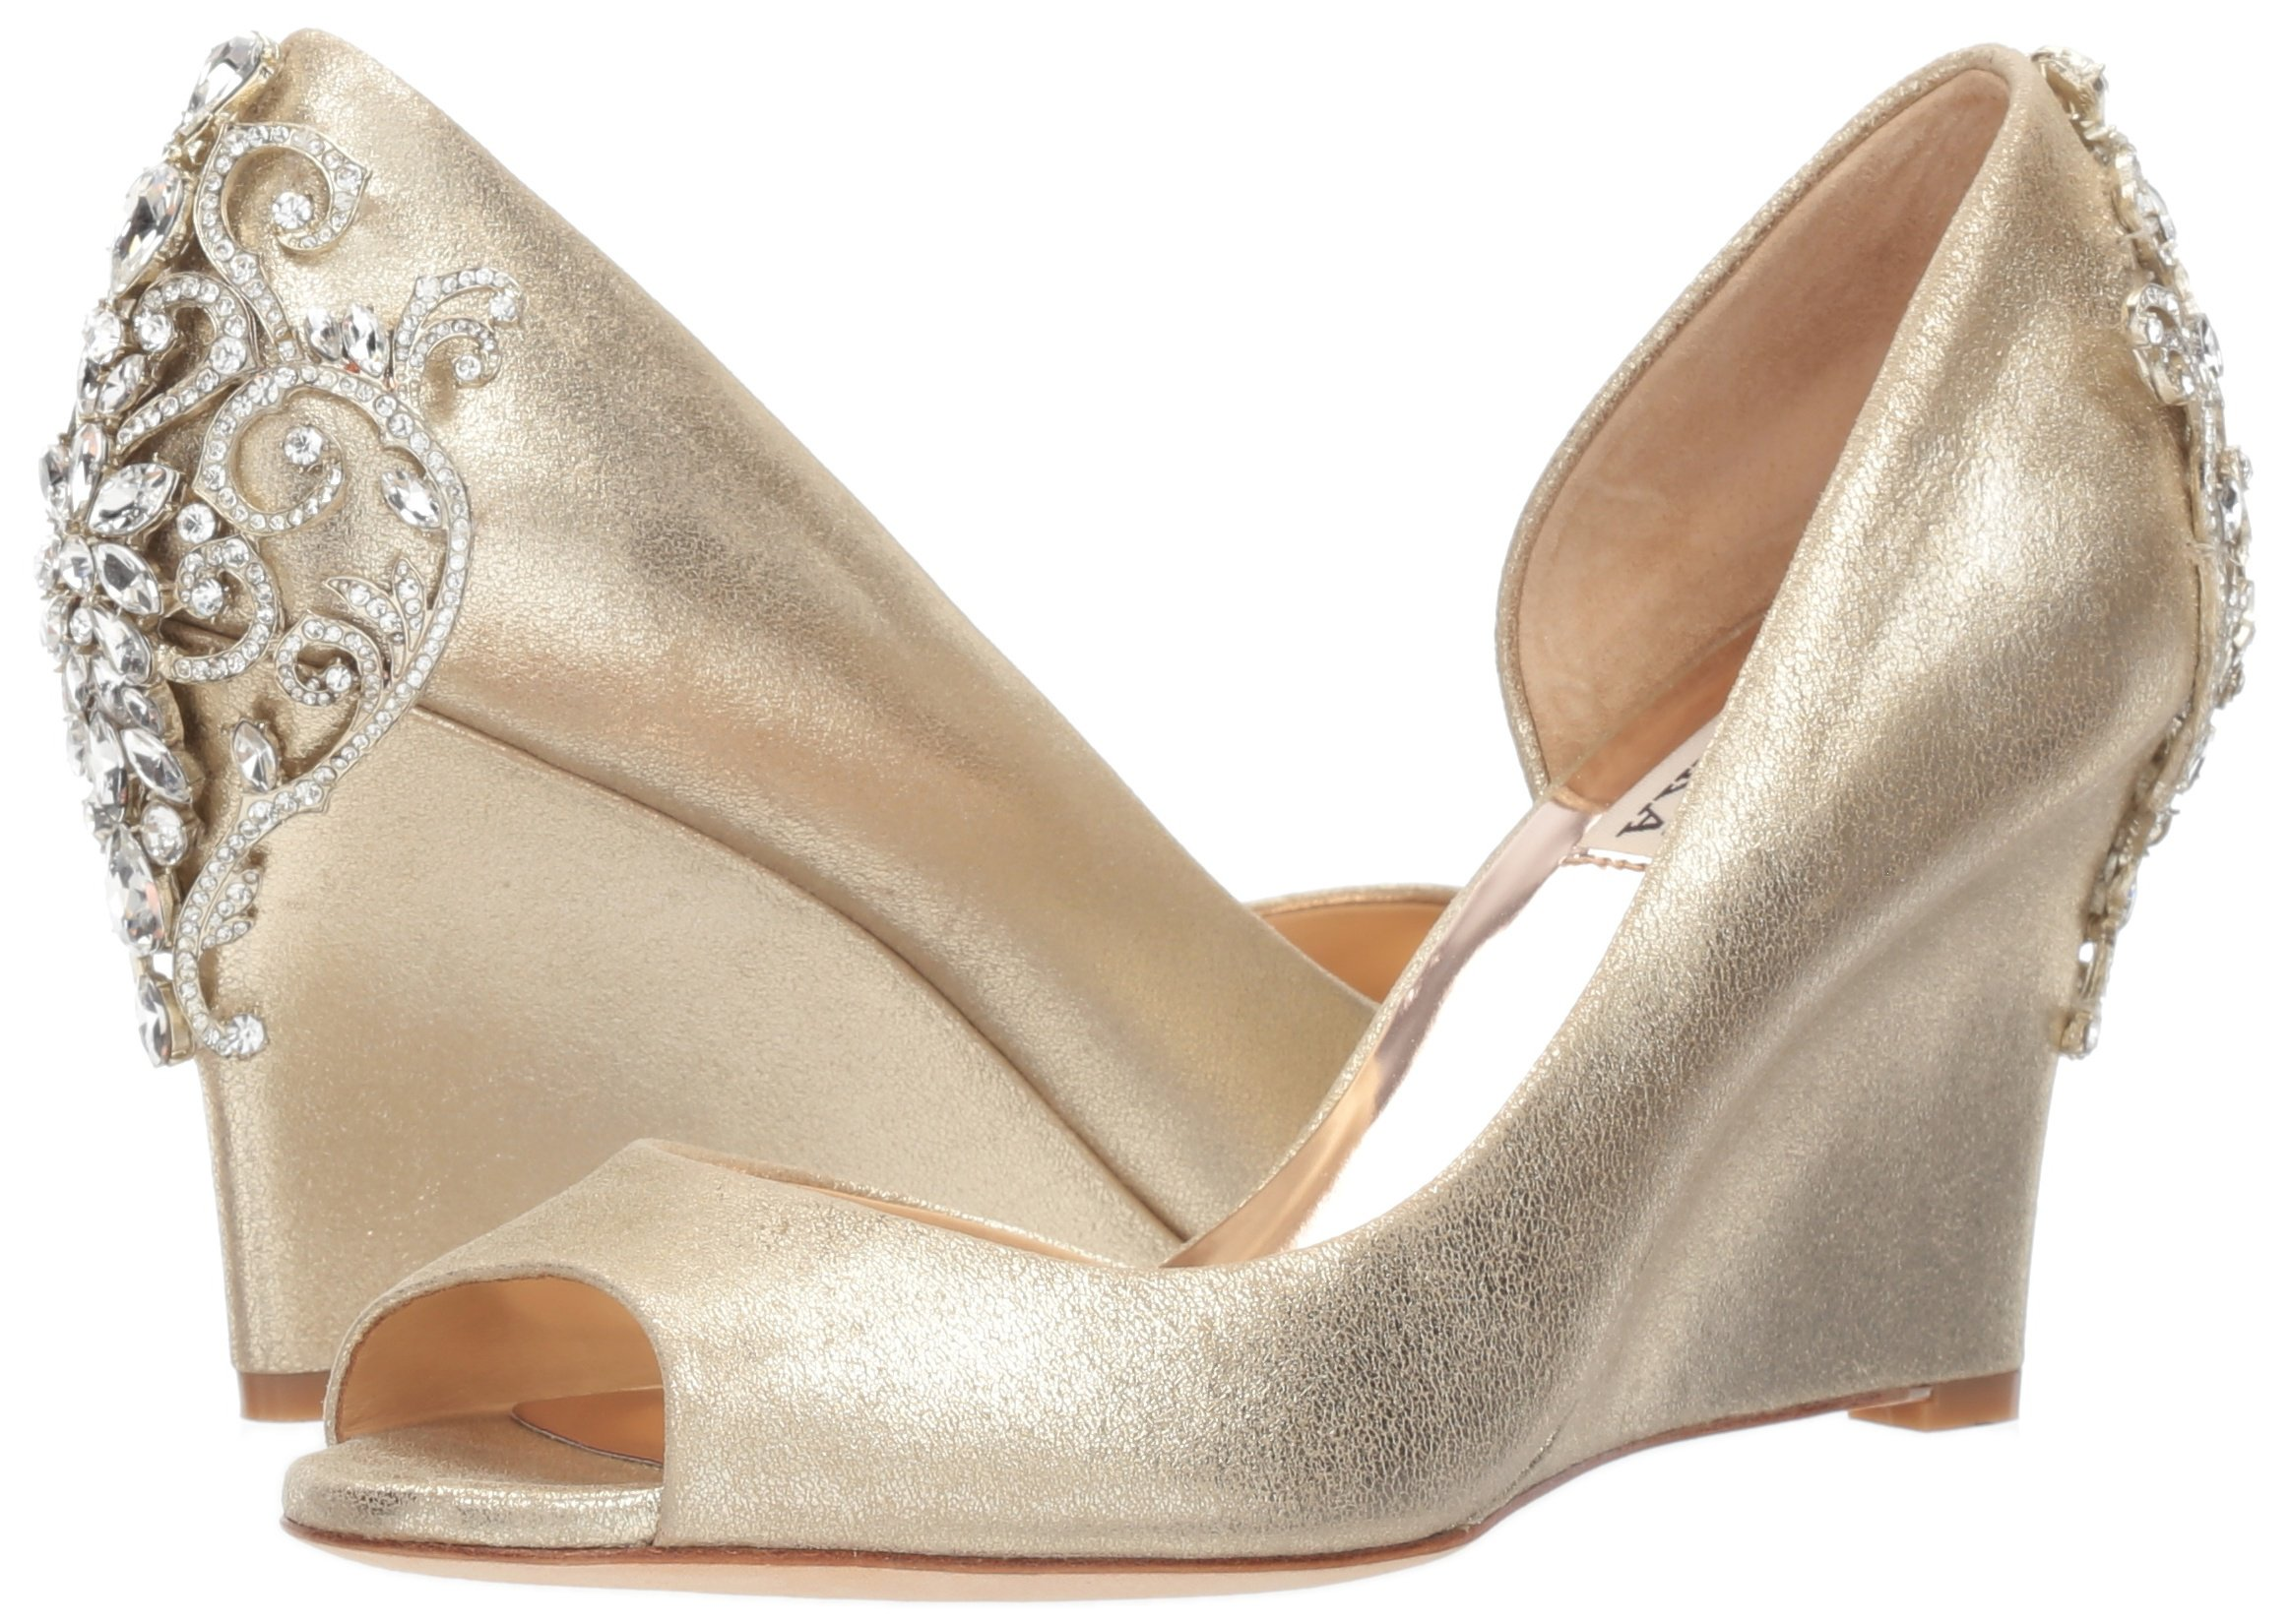 Badgley Mischka Women's Meagan II Pump, platino_929, 7 M US by Badgley Mischka (Image #6)